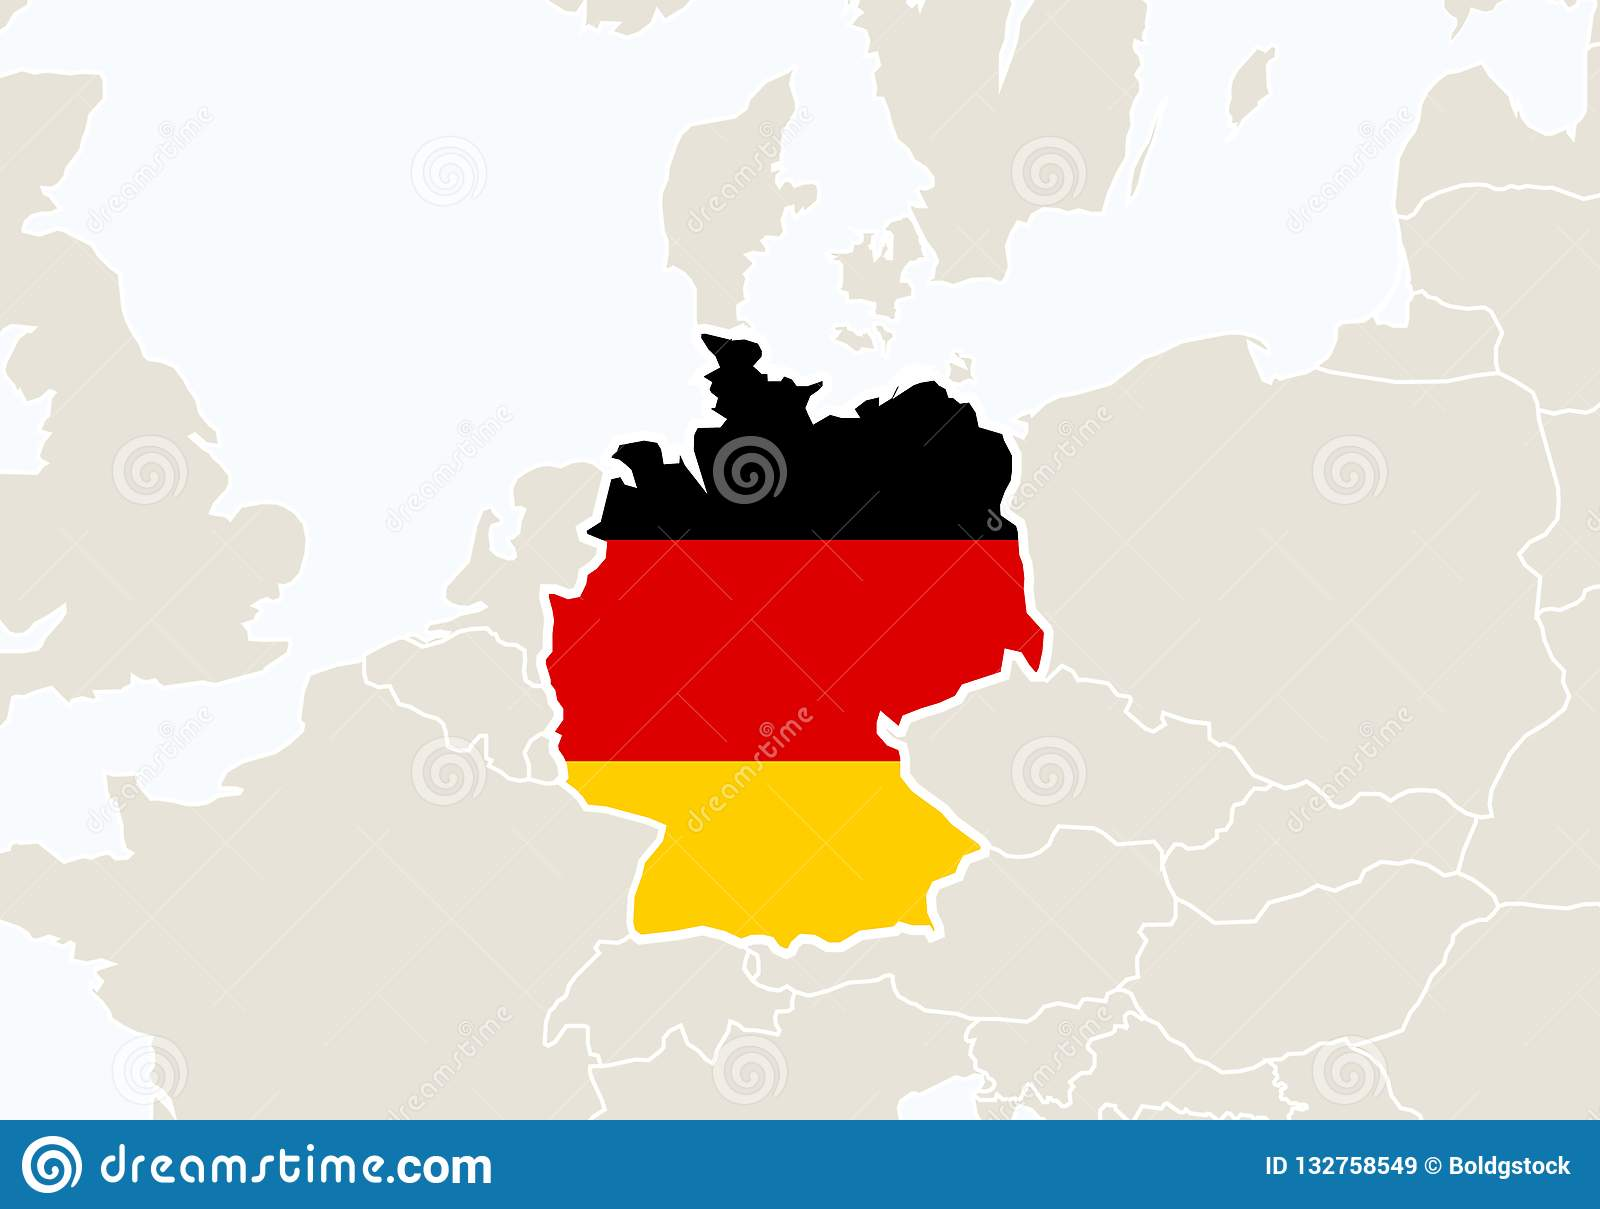 Map Of Europe With Germany Highlighted.Europe With Highlighted Germany Map Stock Vector Illustration Of